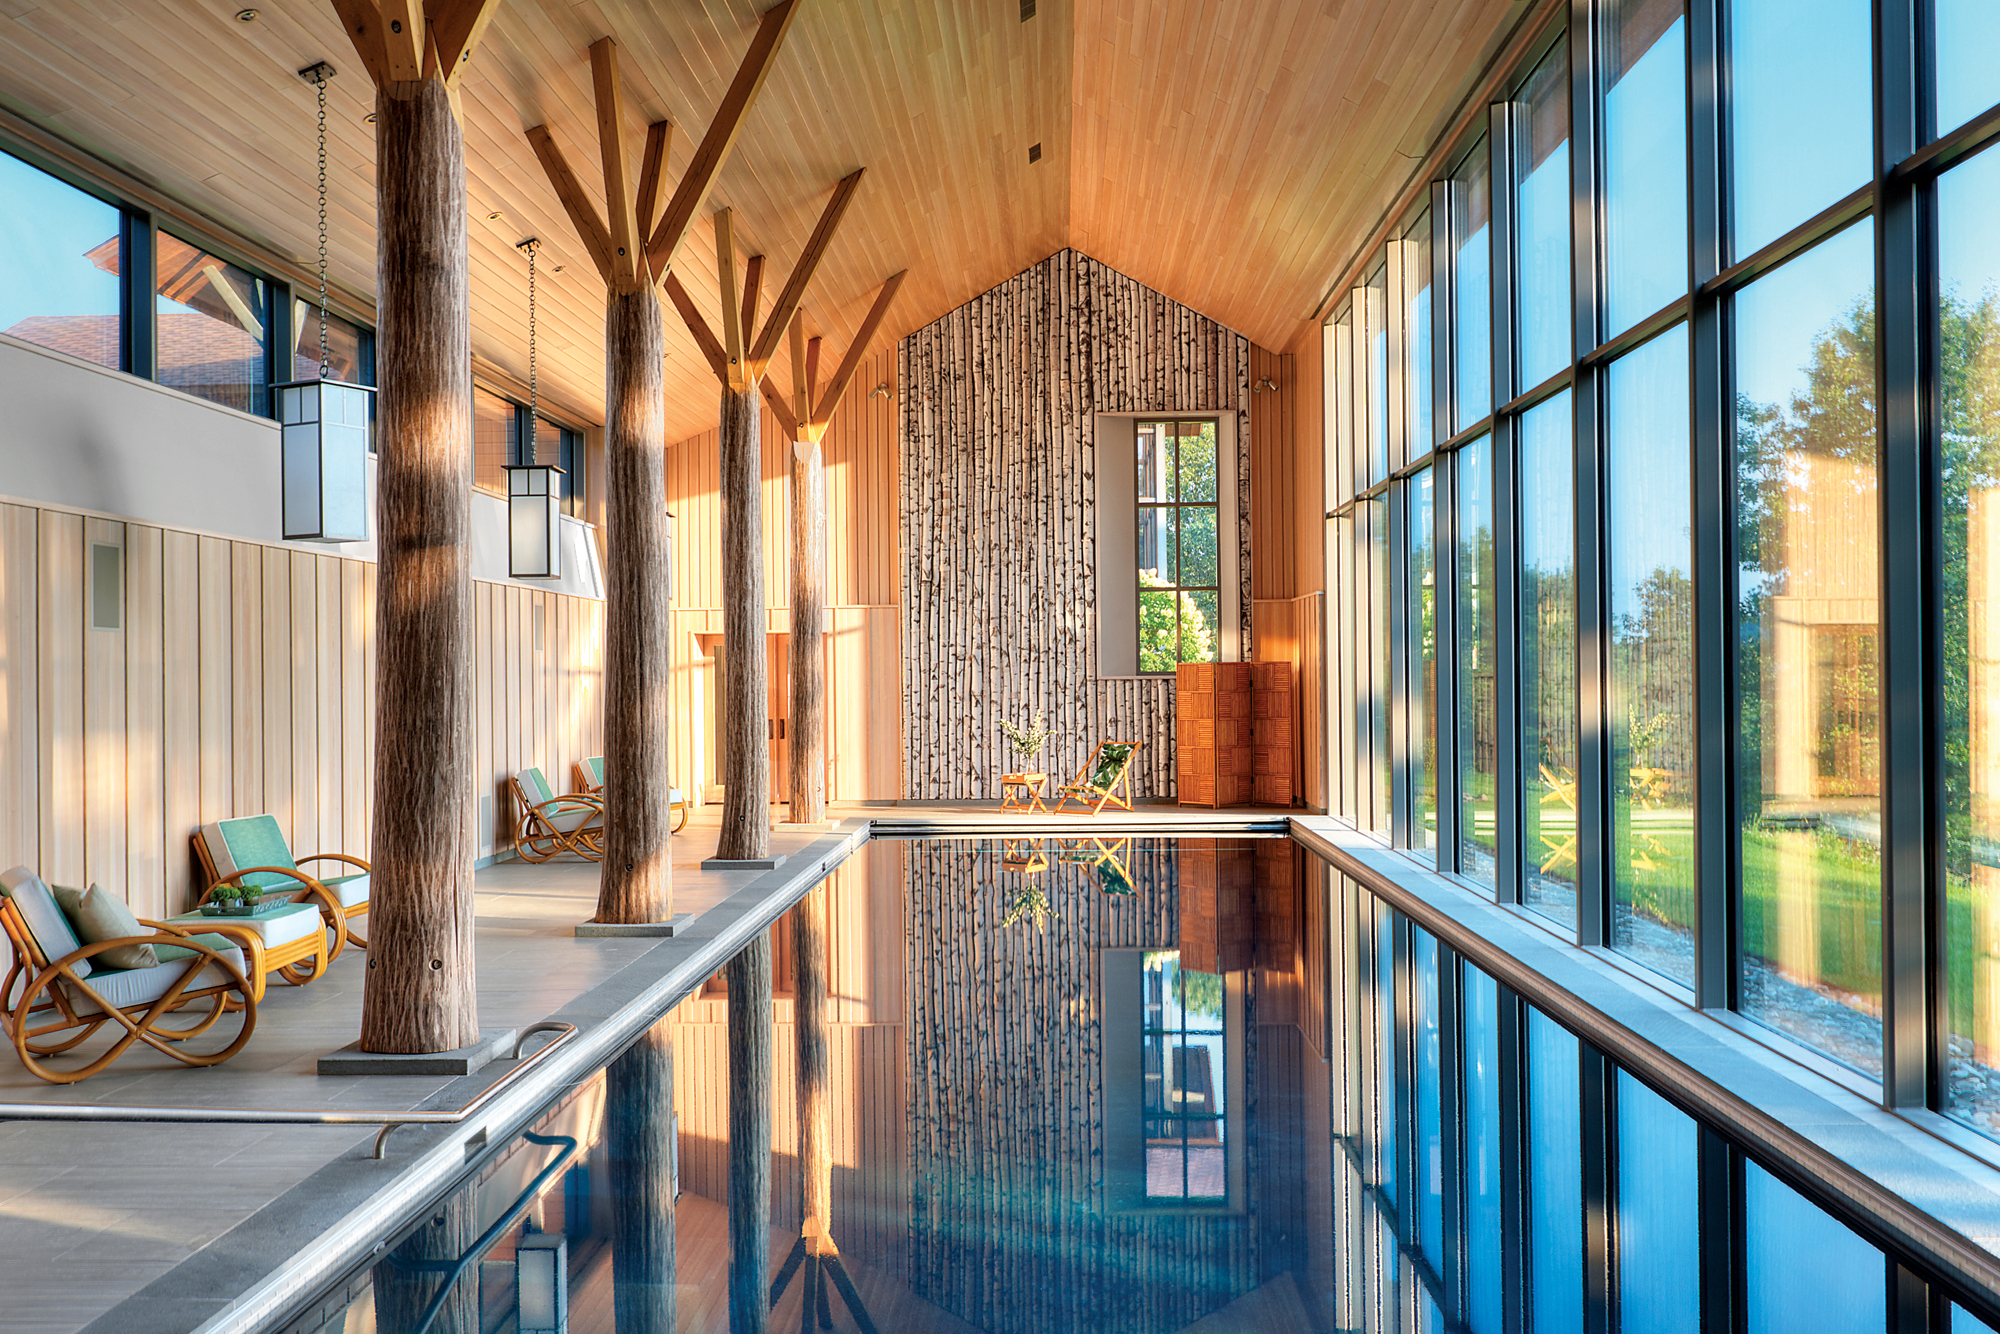 A secret pool house by barliswedlick architects for Pool house interior